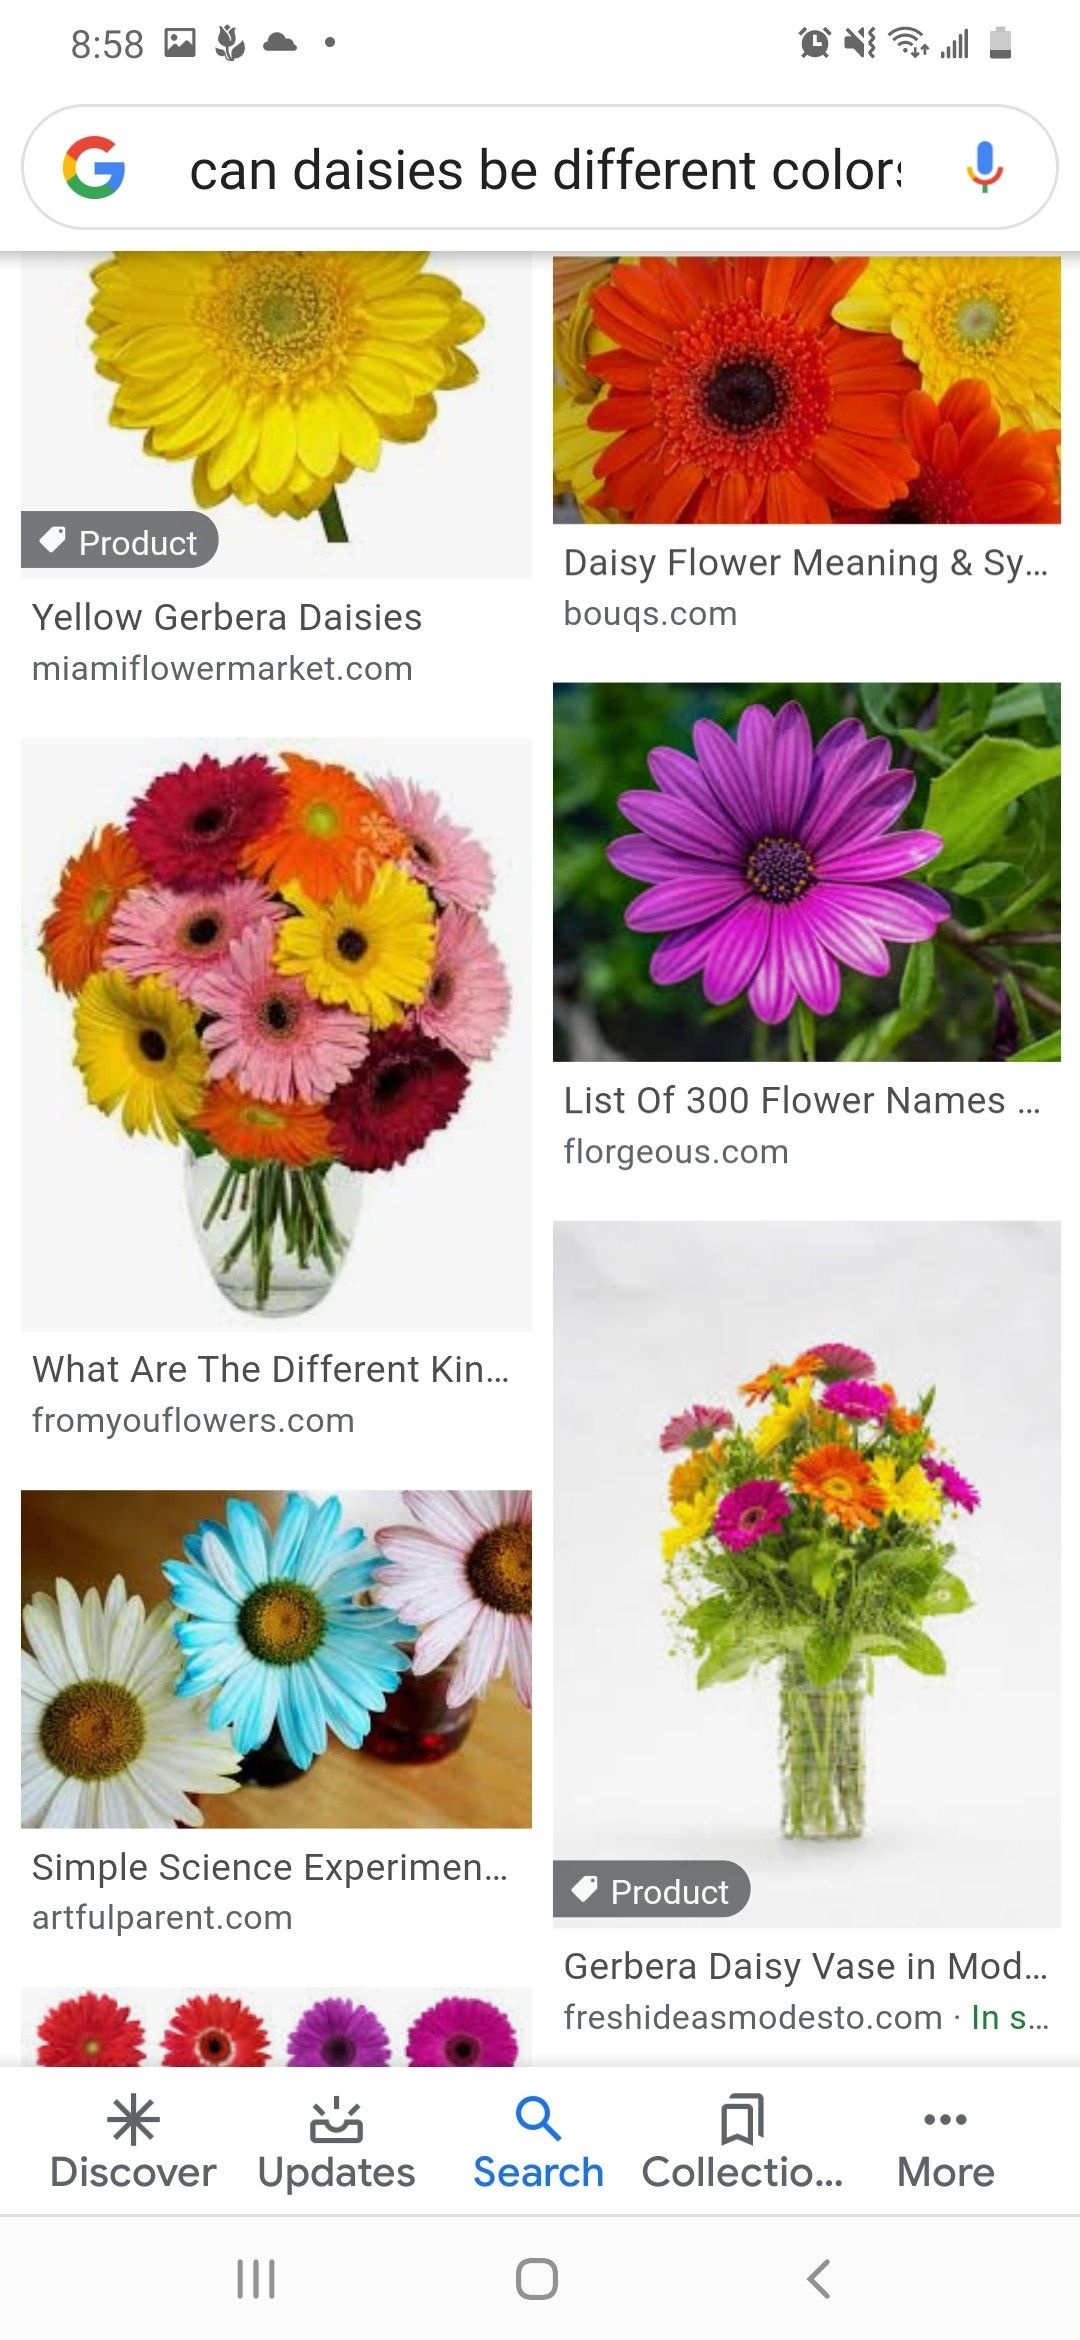 Pin By Mandie Ross On Tattoo Ideas In 2020 Daisy Flower Meaning Flower Names Flower Meanings